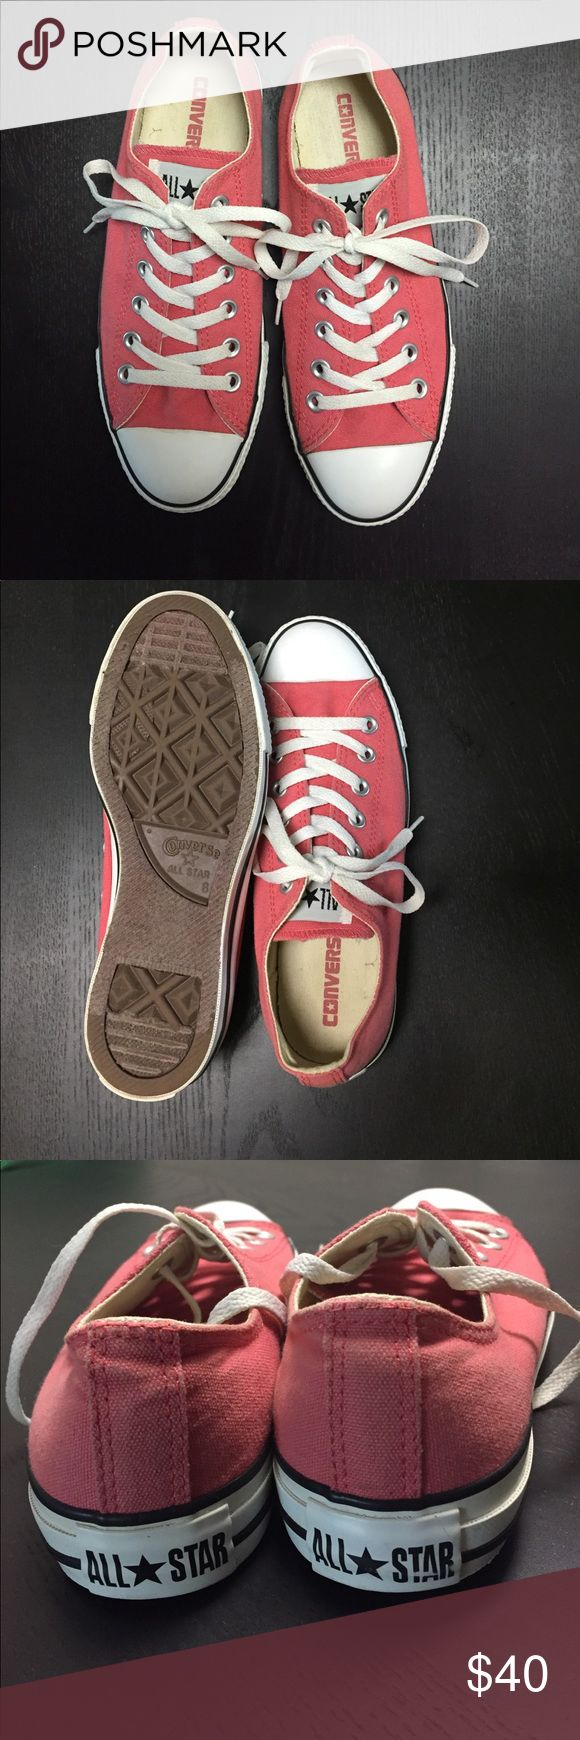 NEW Coral Converse All Stars - Size 8 (men's 6) Coral converse! I've worn these twice, both times indoors, and then they've sat in my closet longing to be worn. Size 8 women's, 6 men's, 39 EU. Check my closet out, I'm open to bundling! Would considering trading for a pair of white converse. Thanks! 🌻BUY THREE, GET FREE SHIPPING • BUY TWO, CUSTOM DISCOUNT🌻 Converse Shoes Sneakers